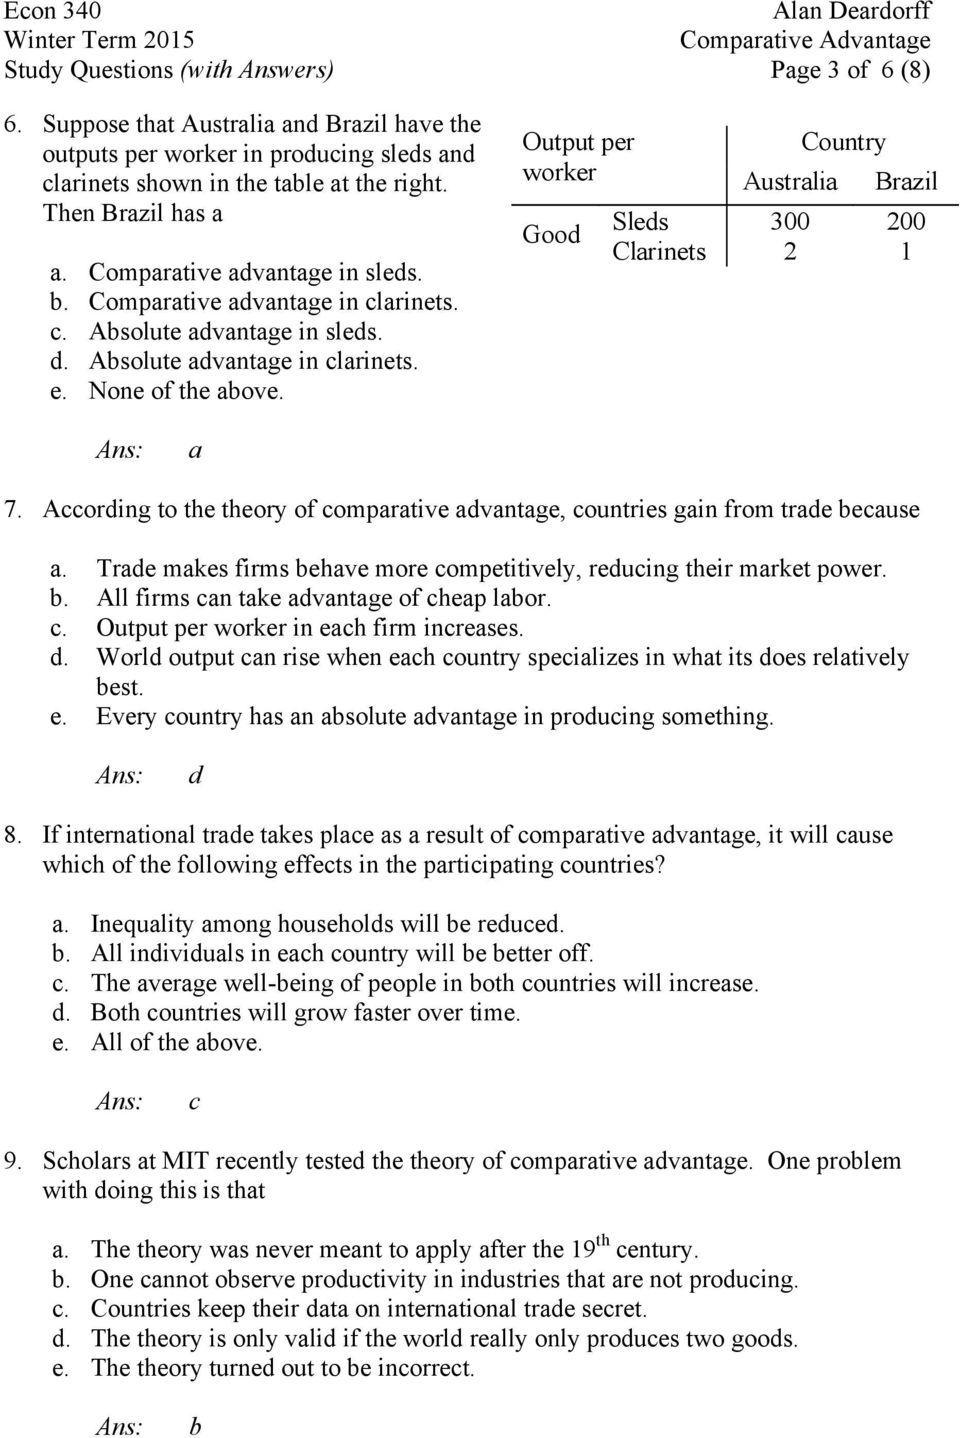 worksheet Comparative Advantage Worksheet study questions with answers lecture 3 comparative advantage and output per worker australia brazil sleds 300 200 good clarinets 2 1 a 7 according